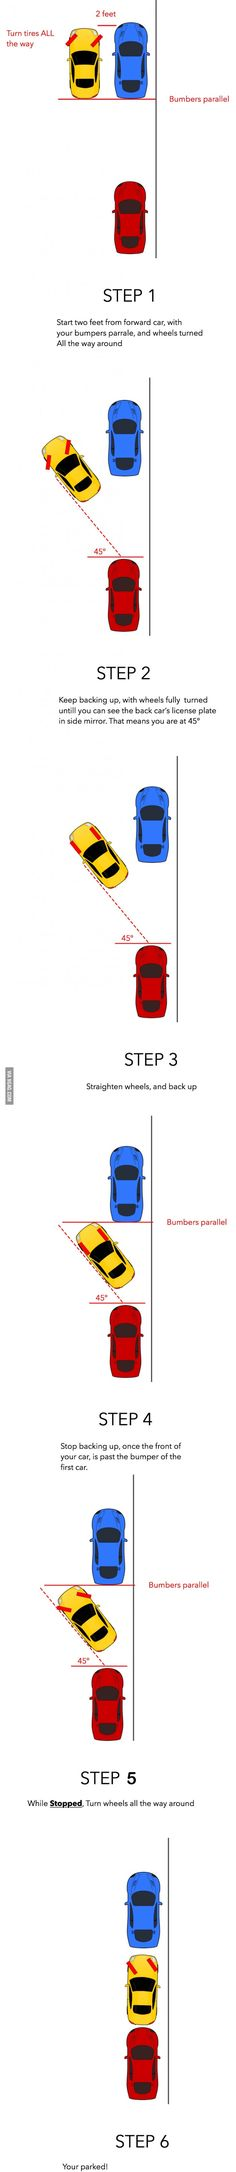 Parallel Parking Hack (Taught to me by a bus driver) For people still doing parallel parking